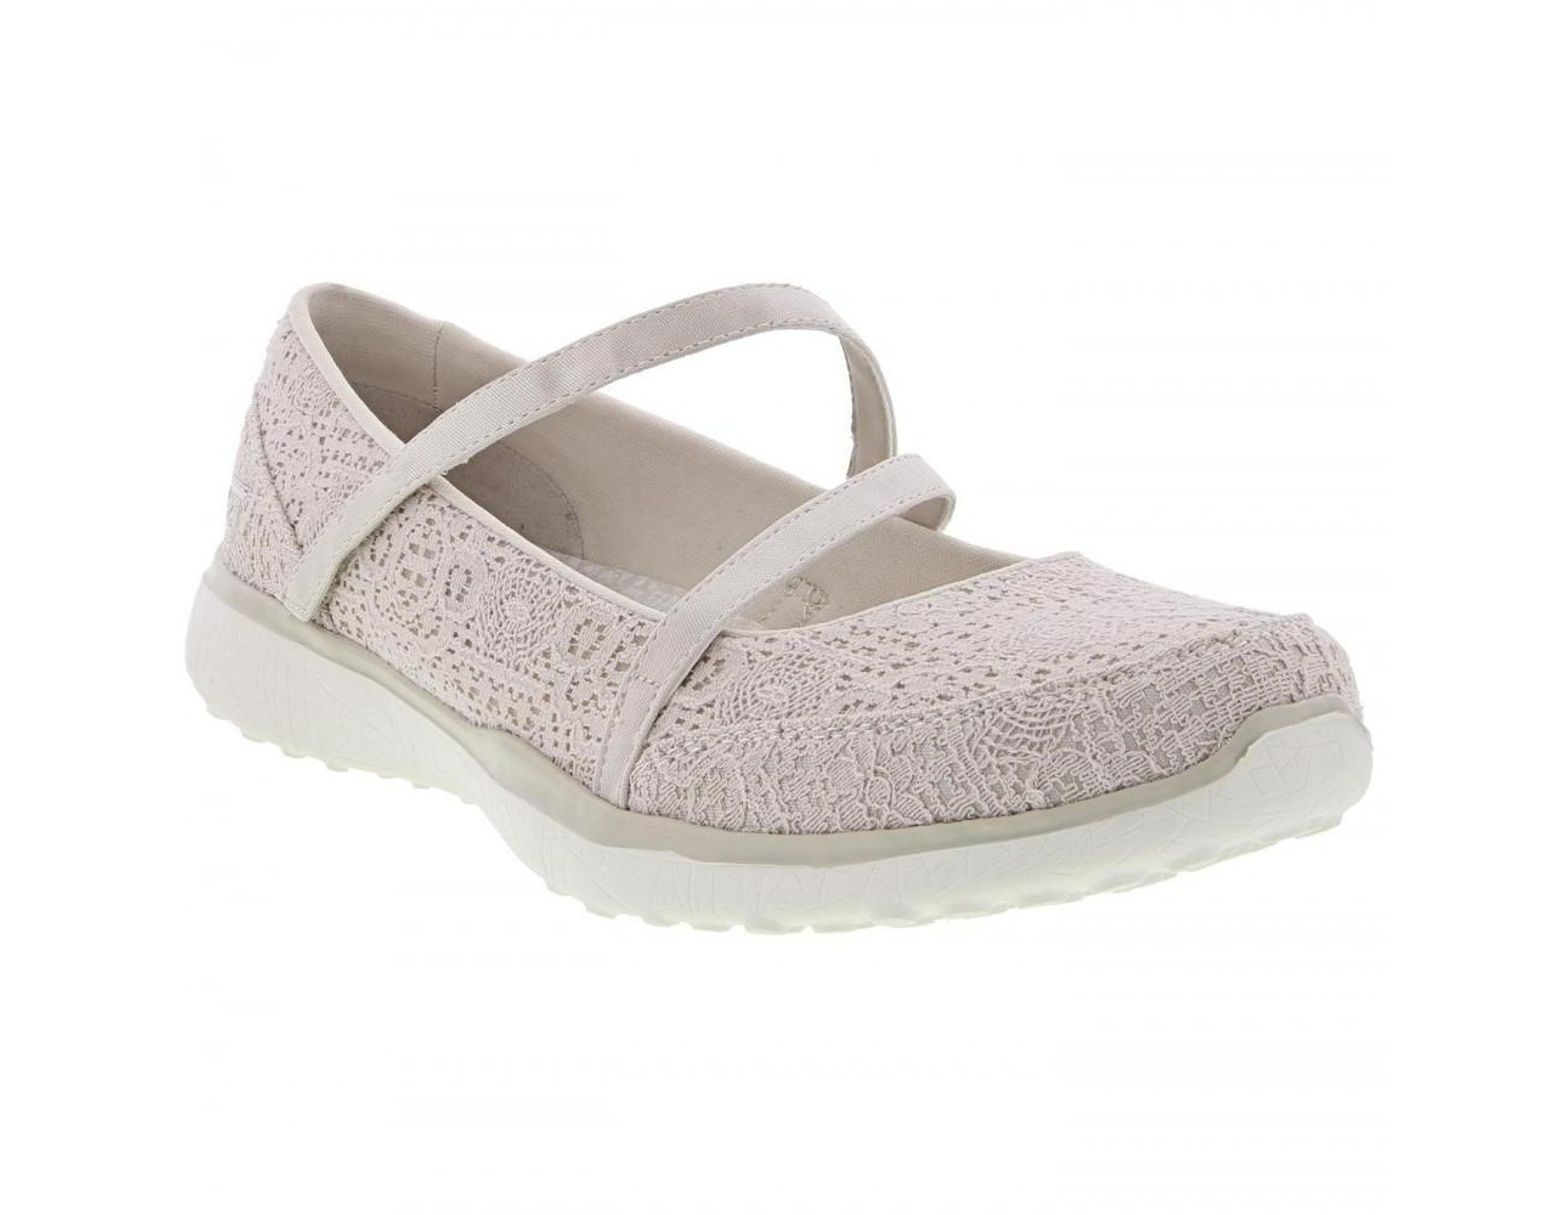 Shoes Jane Microburst Pure Memory In Foam Pumps Mary Skechers R54AjL